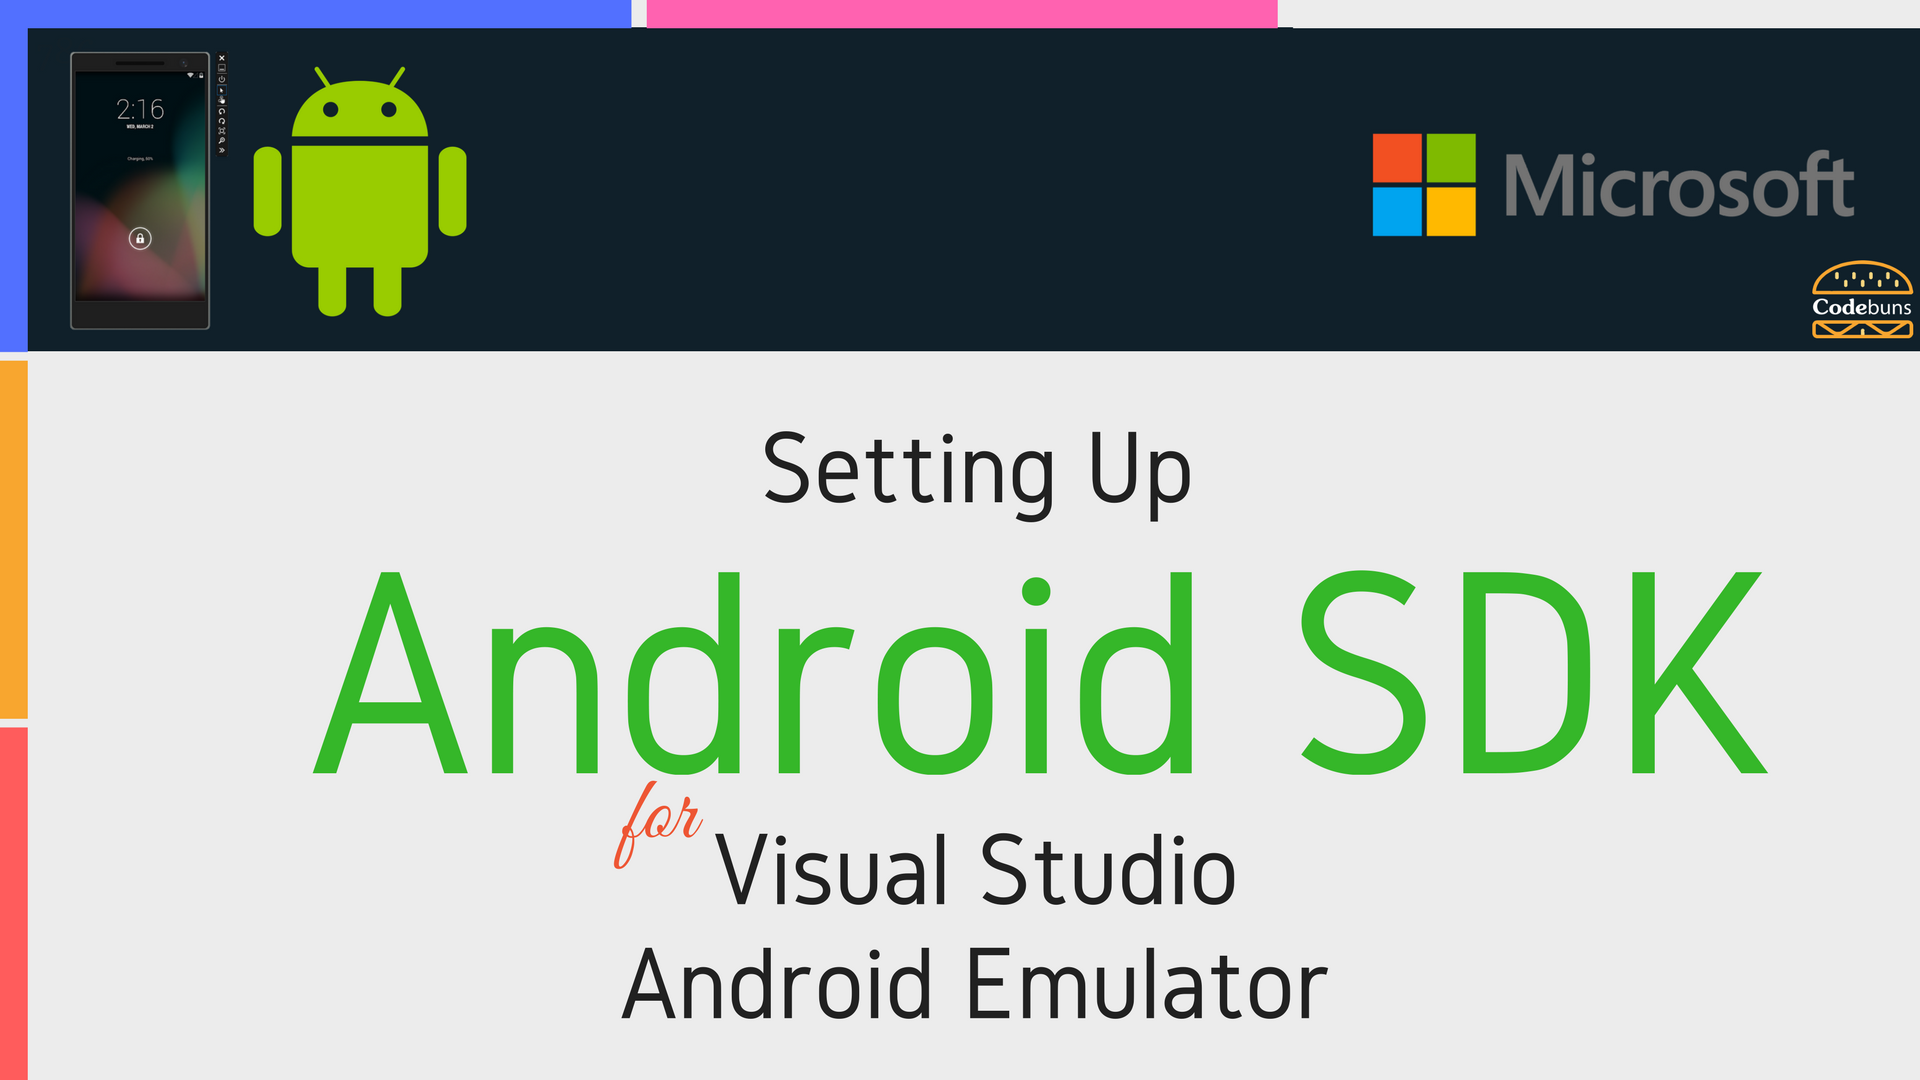 setting up android sdk for visual studio android emulator